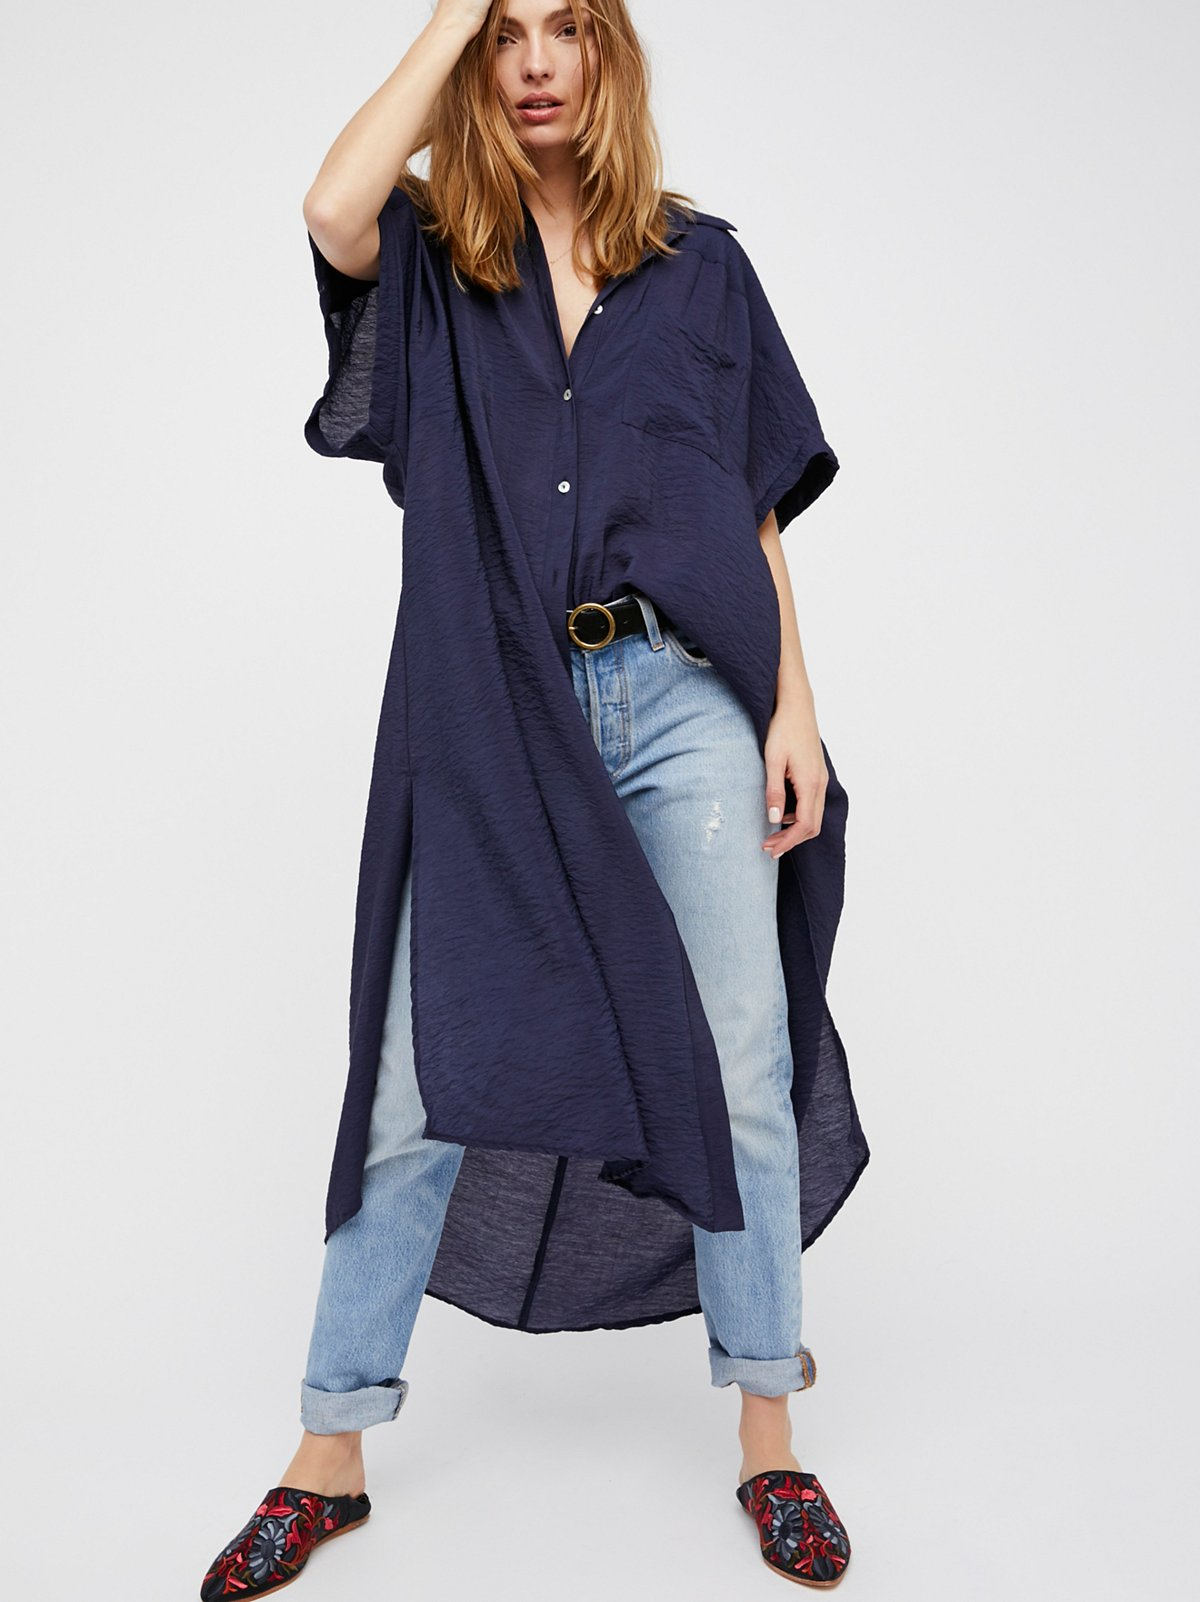 Lovely Things No.13 - Navy Georgie Maxi Top